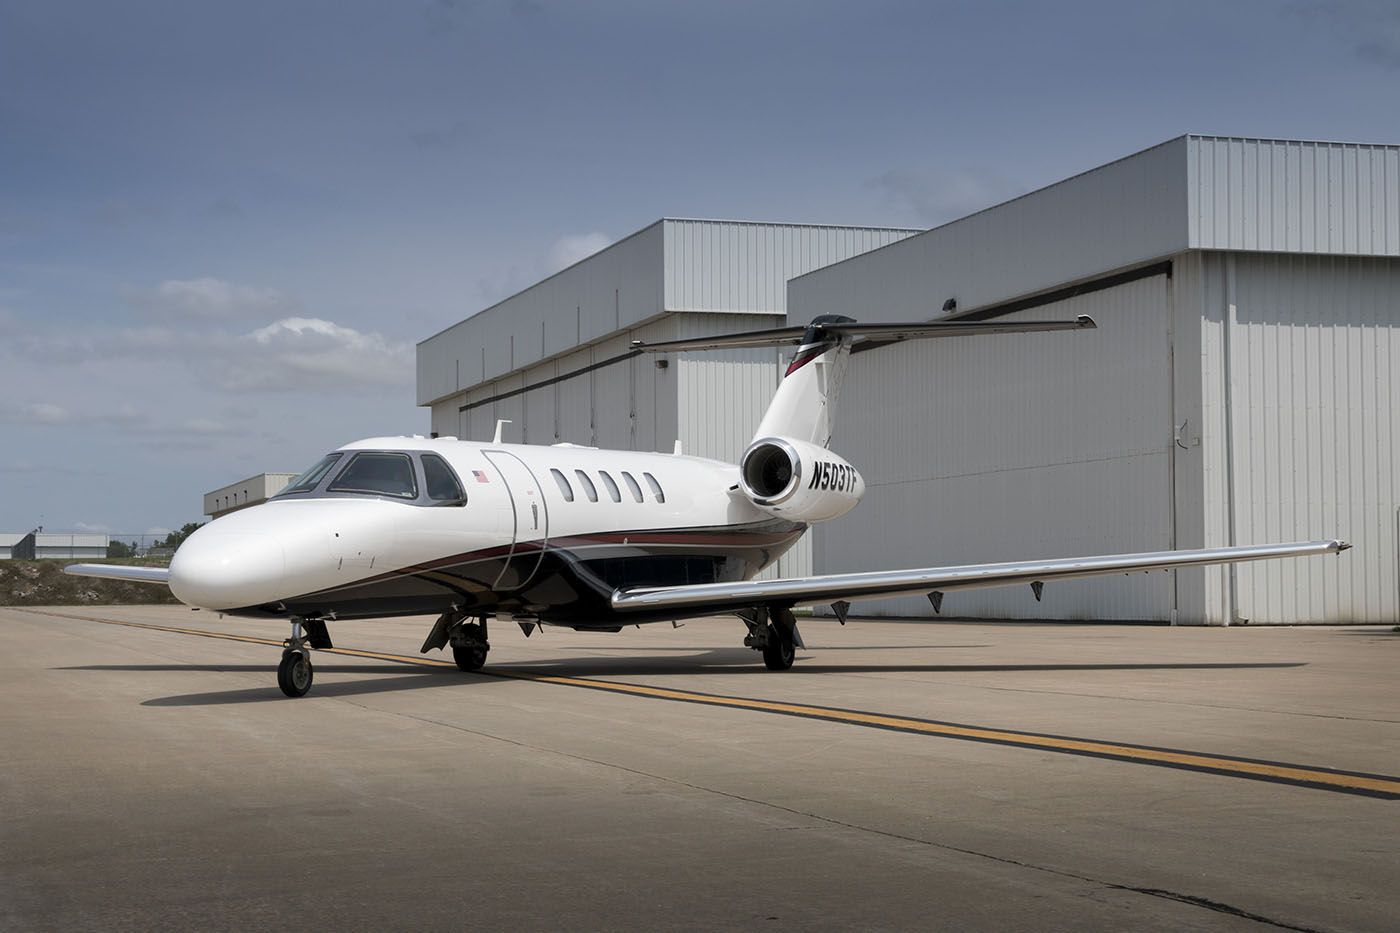 Citation Cj4 For Sale Globalair Com The Market Place For